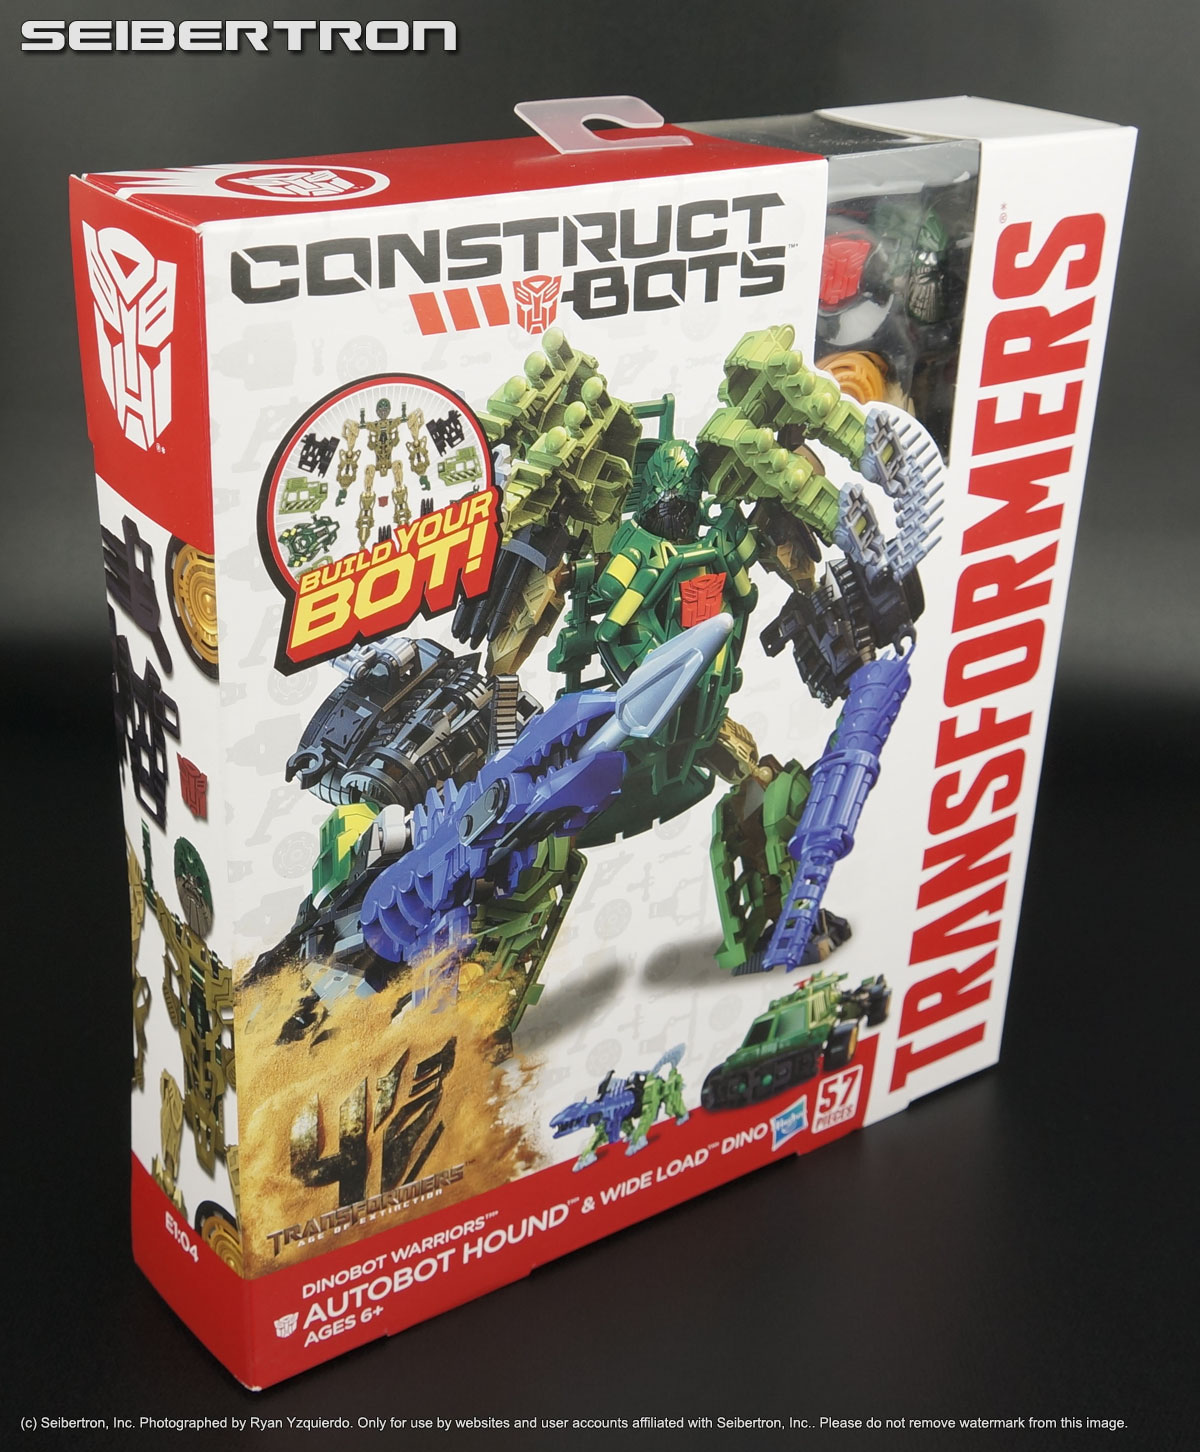 WIDE-LOAD Dinobot Warriors Transformers Age Extinction AOE Construct-Bots HOUND